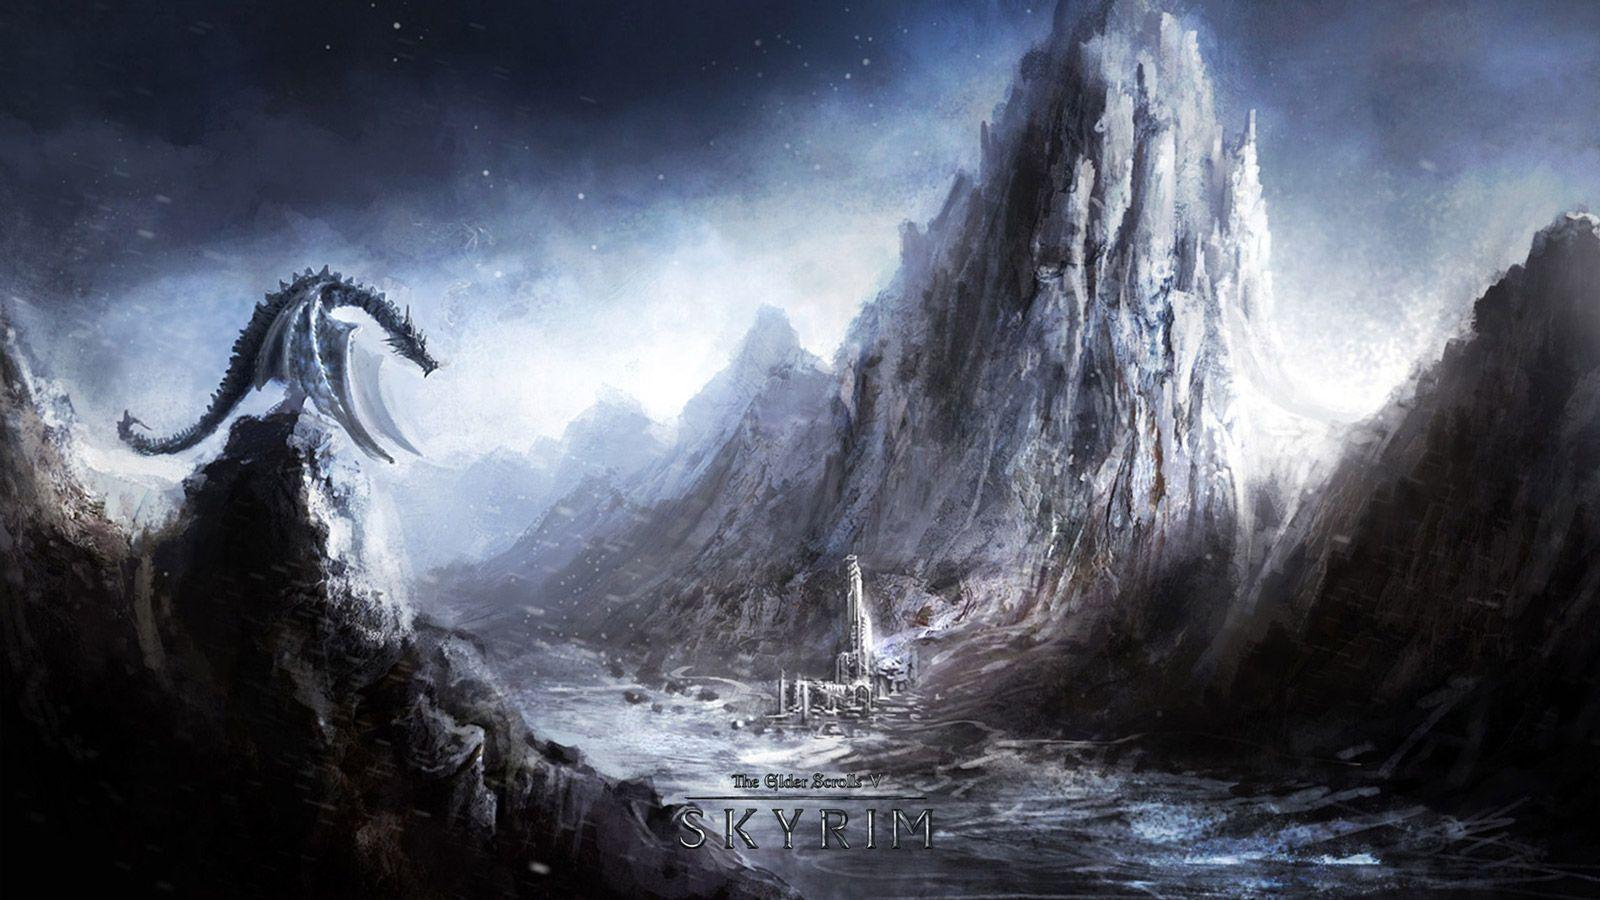 Skyrim Wallpapers 1600x900 - Wallpaper Cave